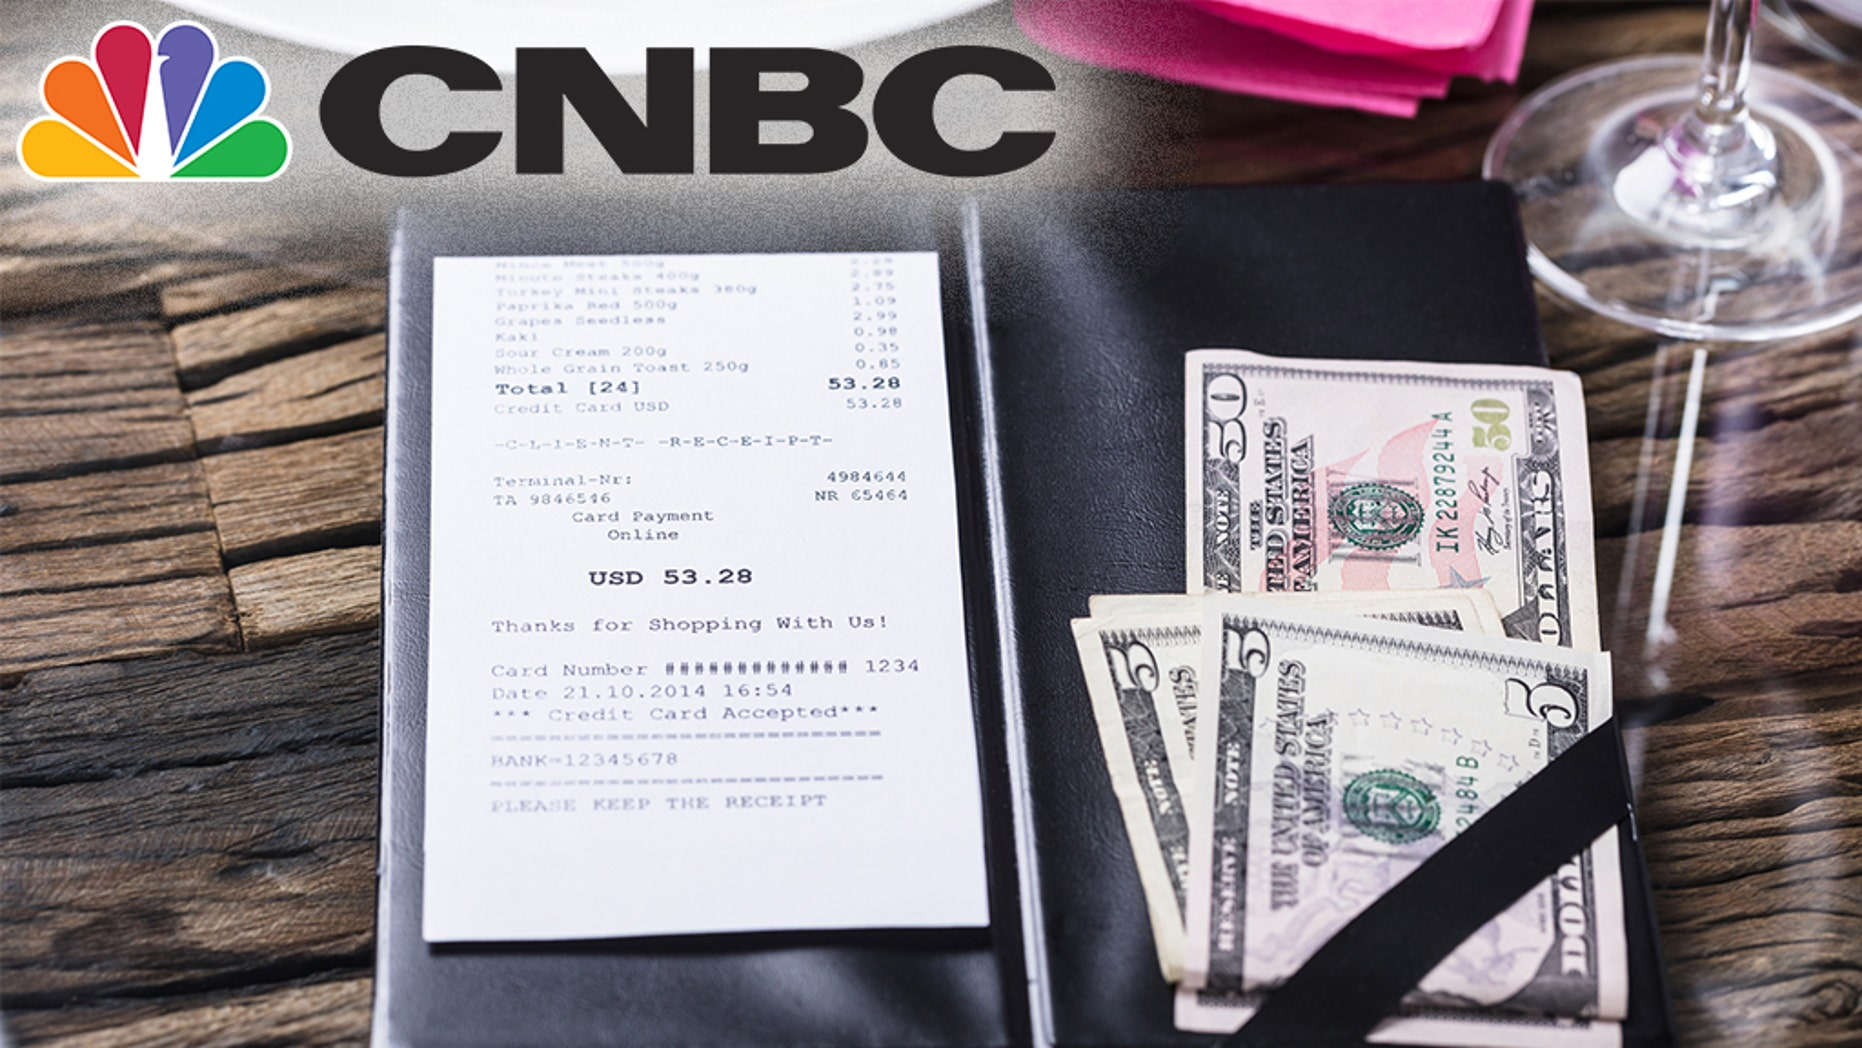 A video on tipping tweeted by CNBC over the weekend sparked controversy.